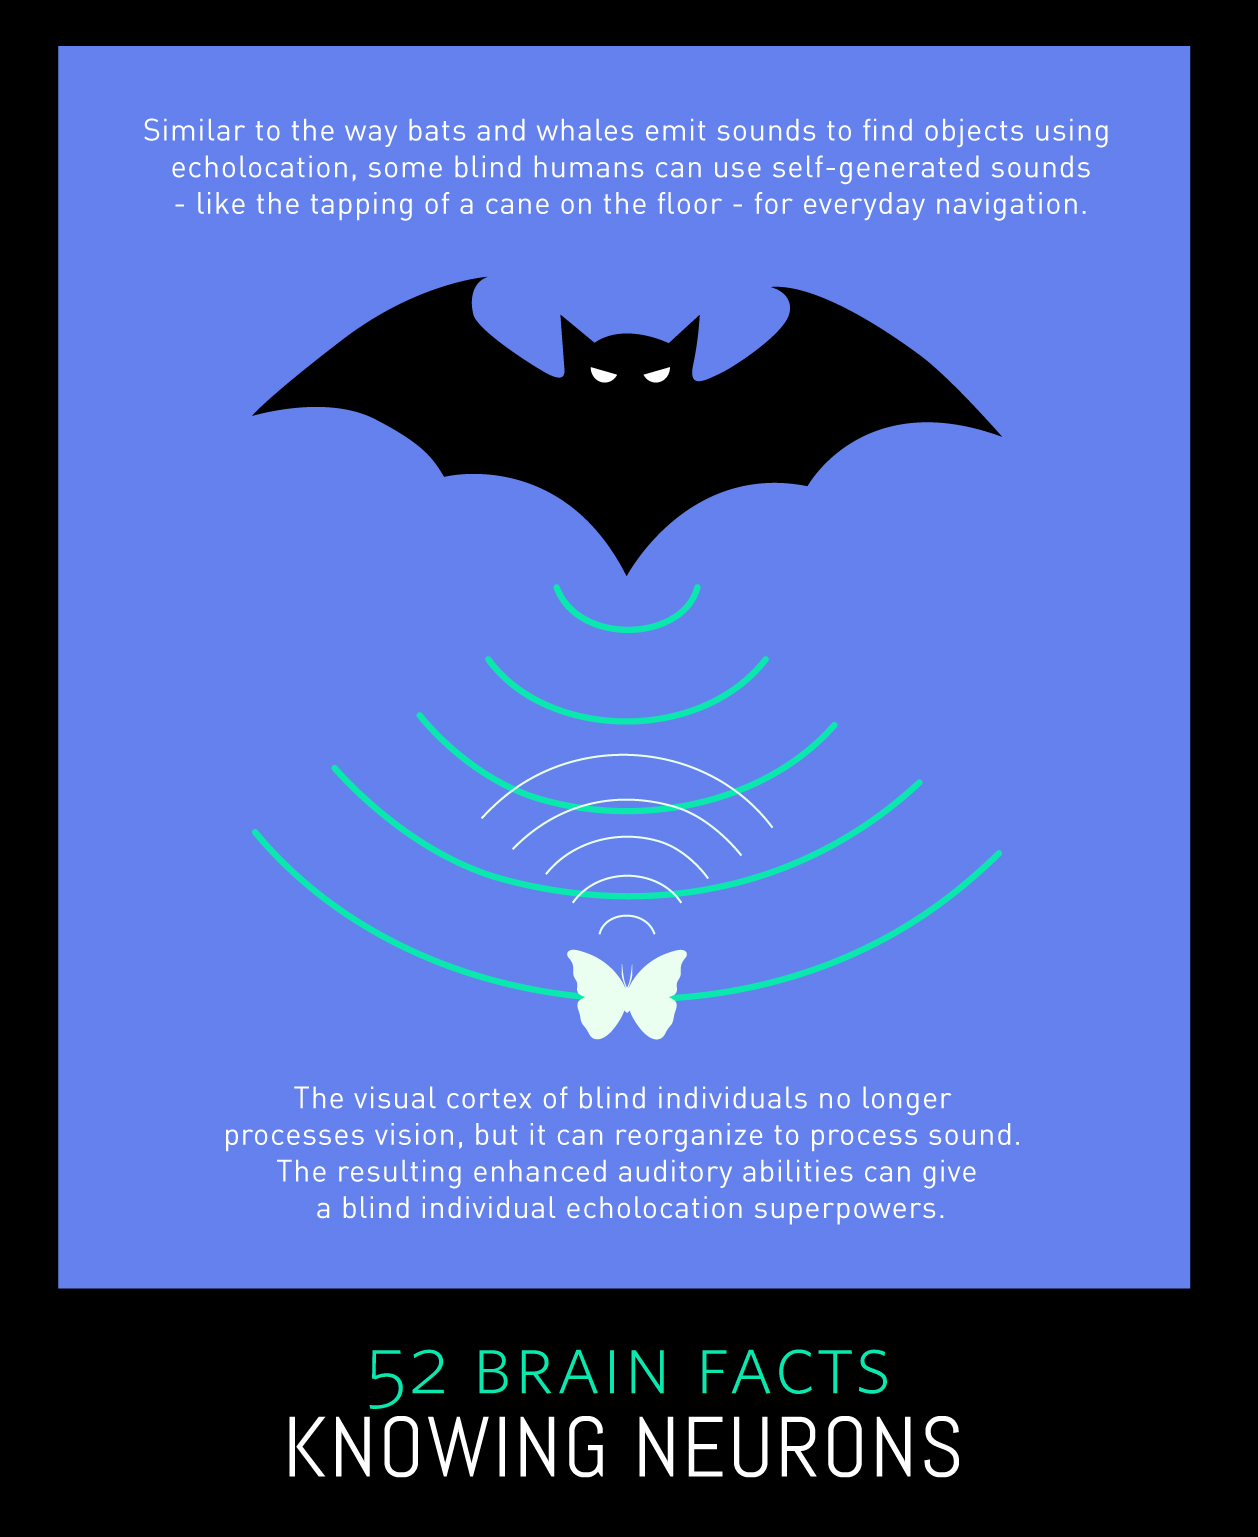 Myth or Fact? Some people can use echolocation.